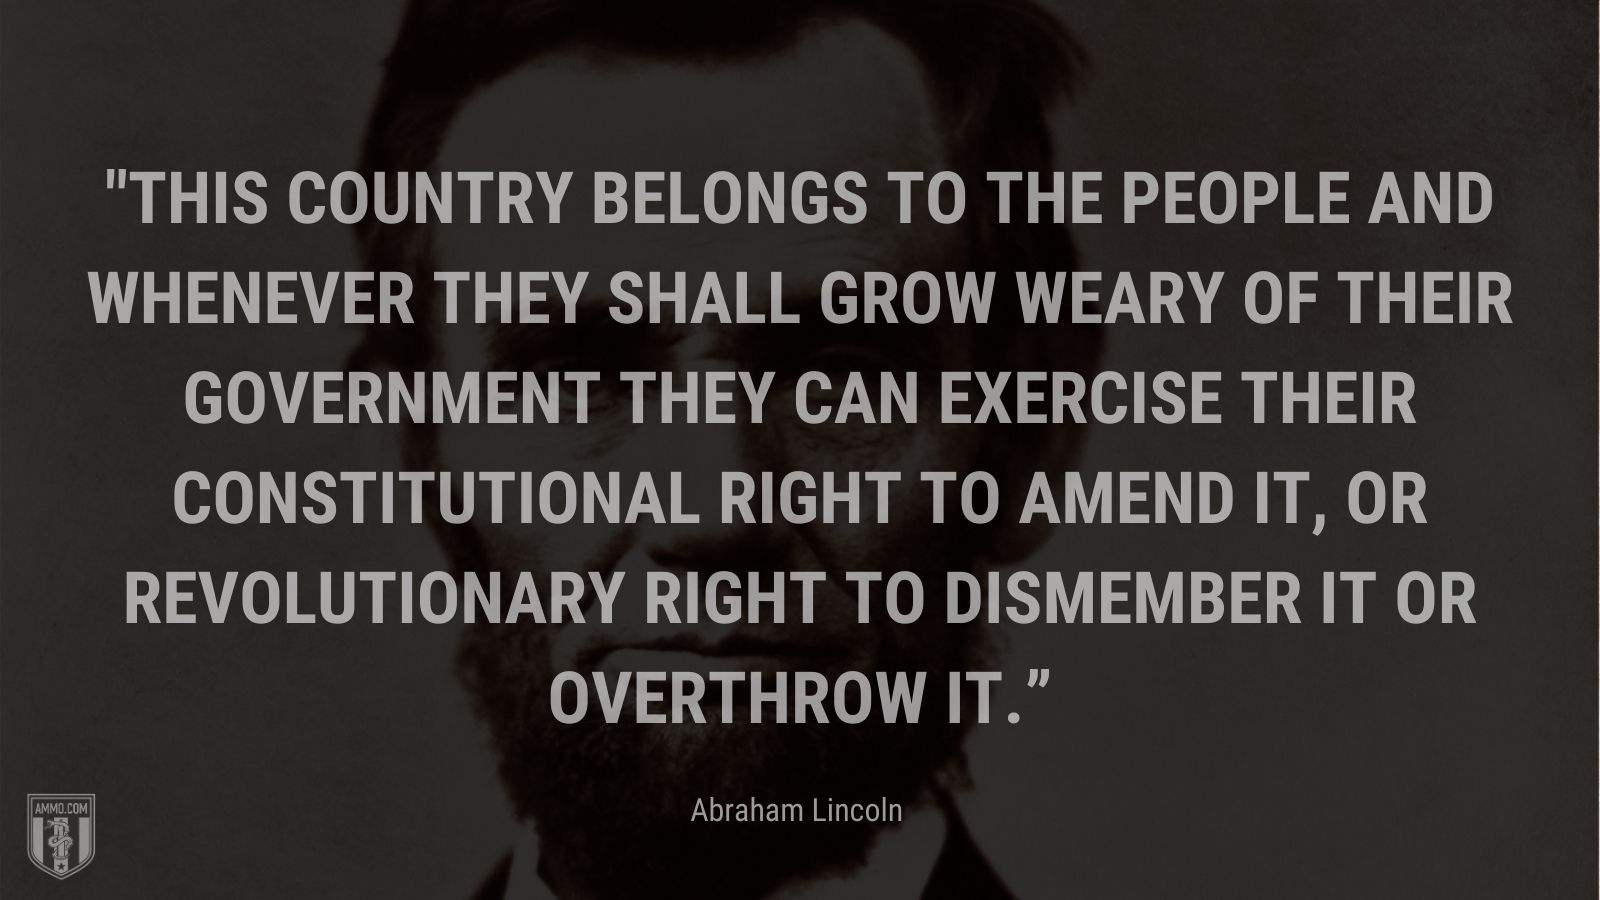 """""""This country belongs to the people and whenever they shall grow weary of their government they can exercise their constitutional right to amend it, or revolutionary right to dismember it or overthrow it."""" - Abraham Lincoln"""